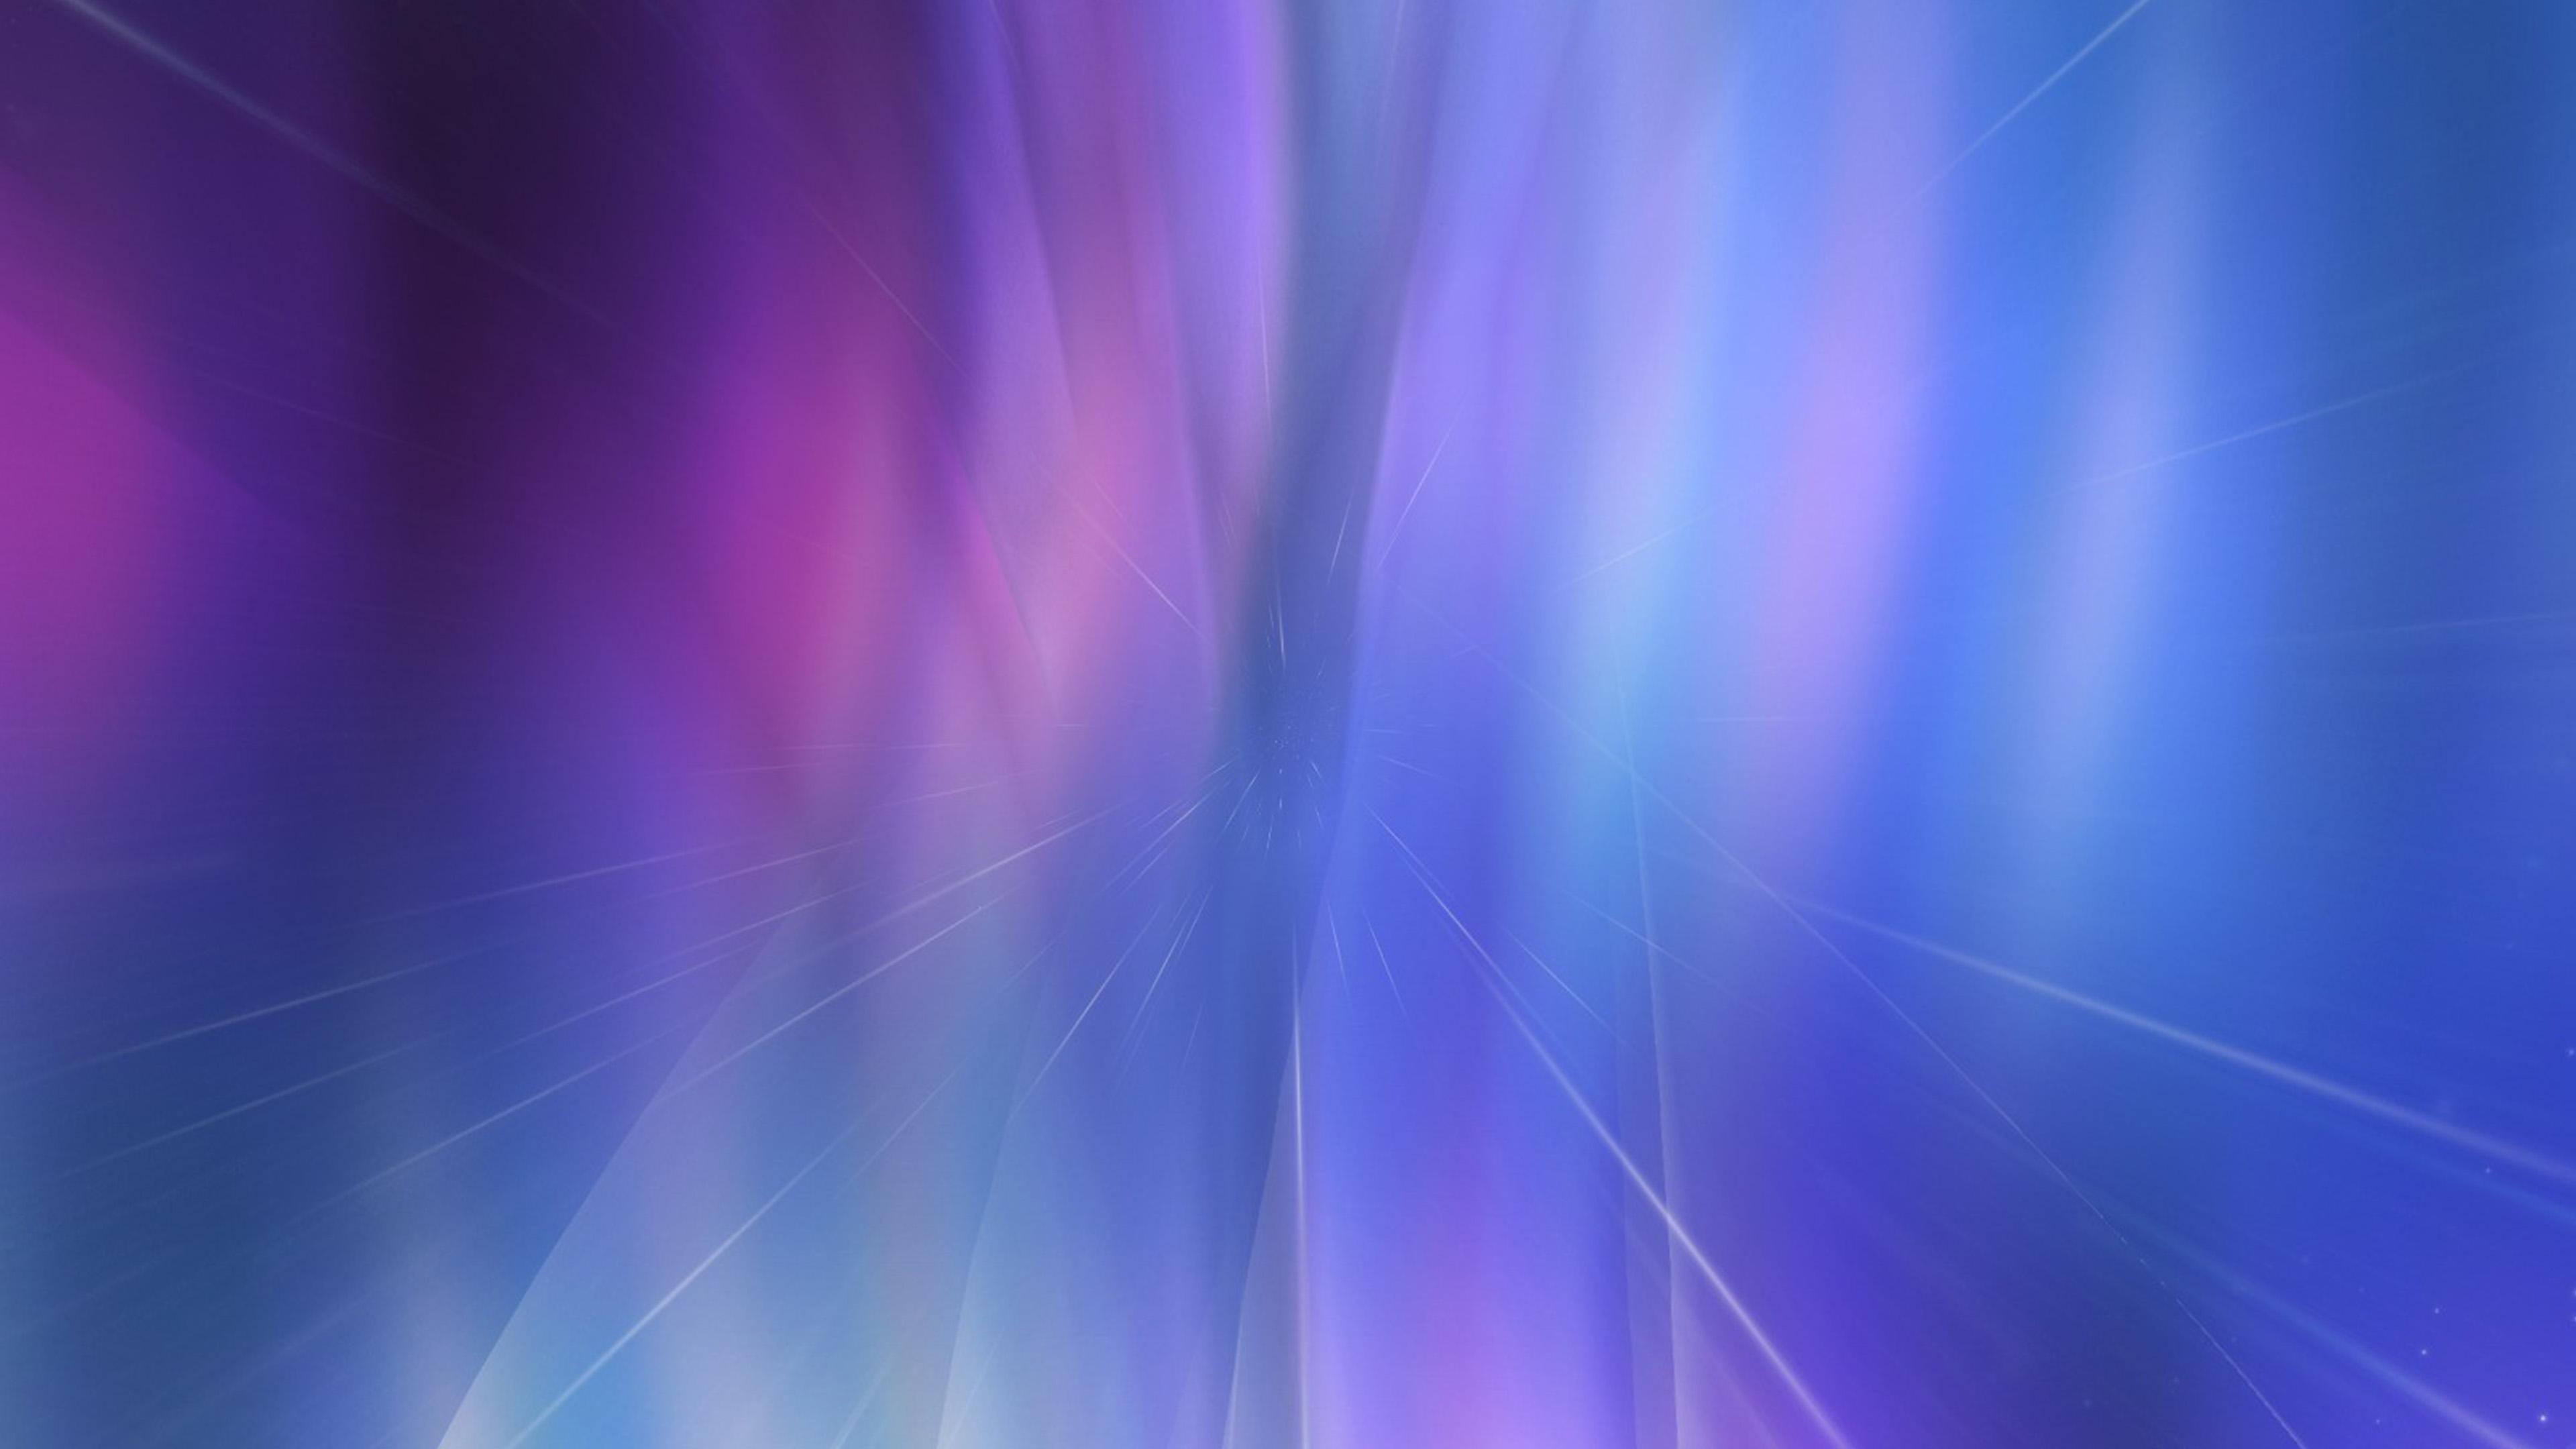 Pink Fall Desktop Wallpaper Vp16 Fantasy Purple Blue Abstract Pattern Wallpaper